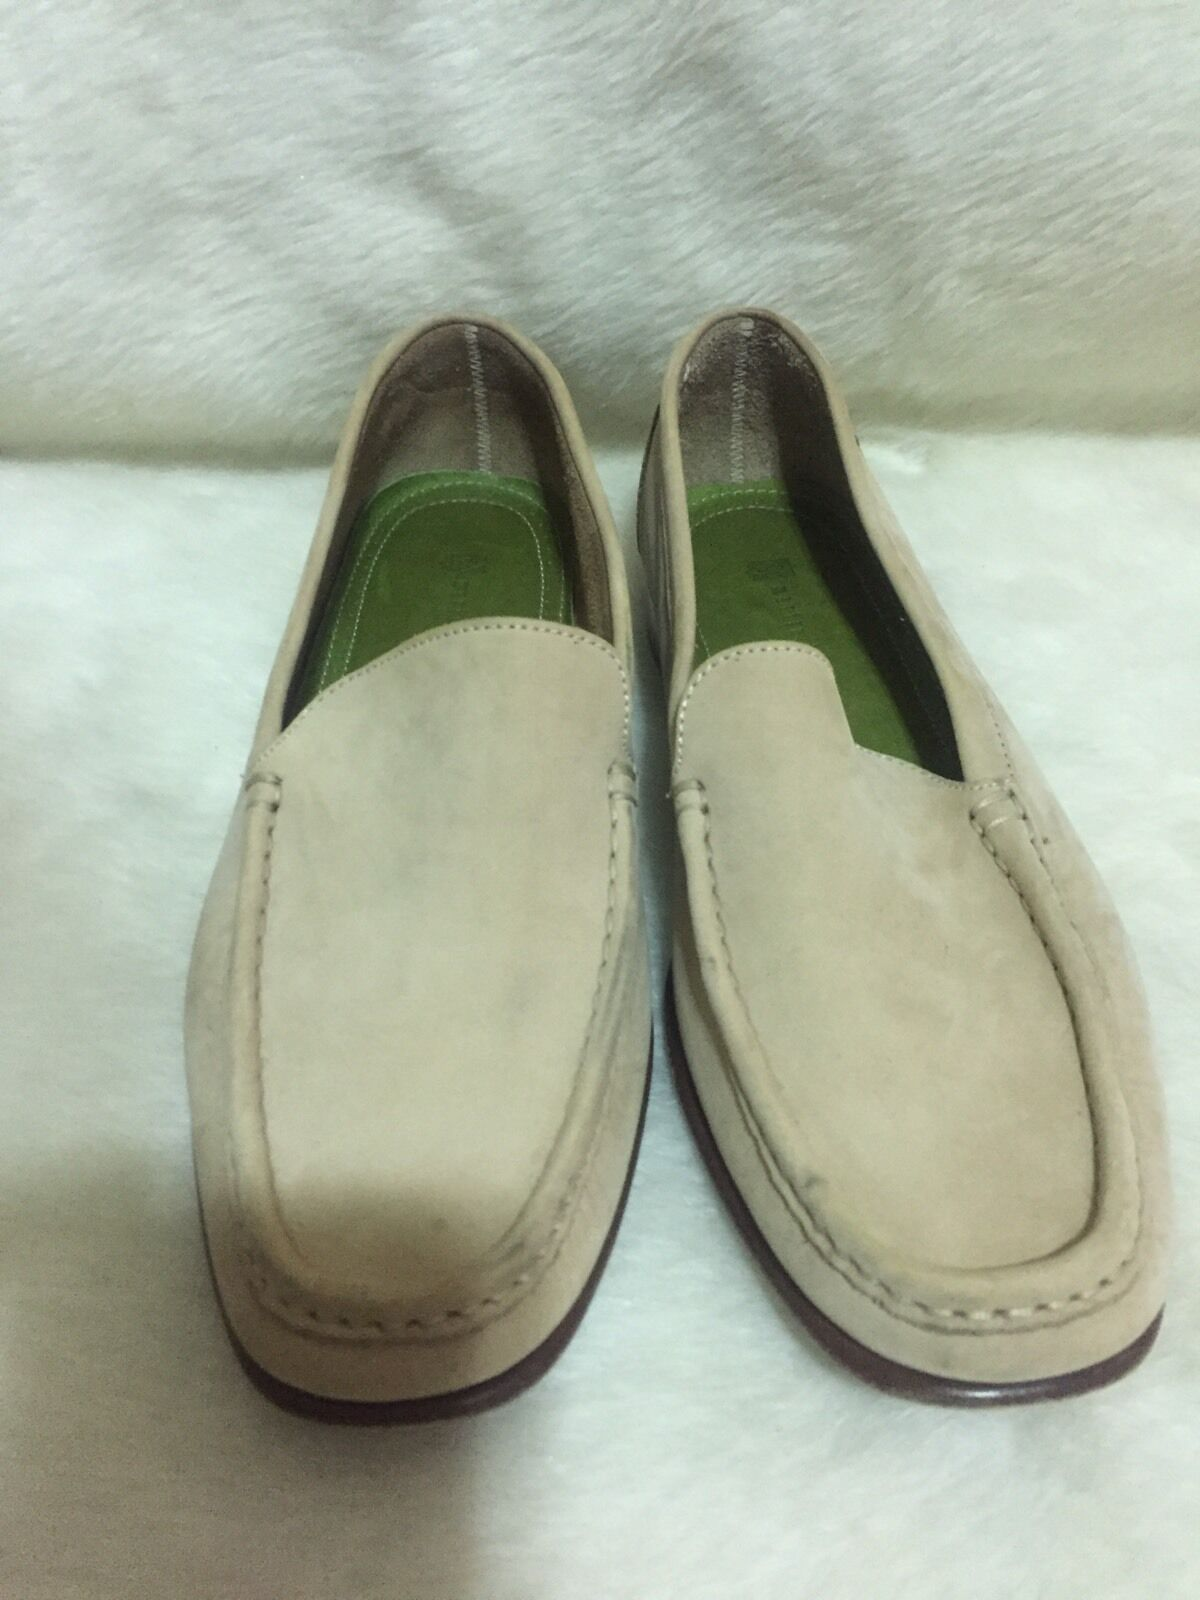 Martin Dingman Shoes Loafers Style 5300032D Size 9 1/2